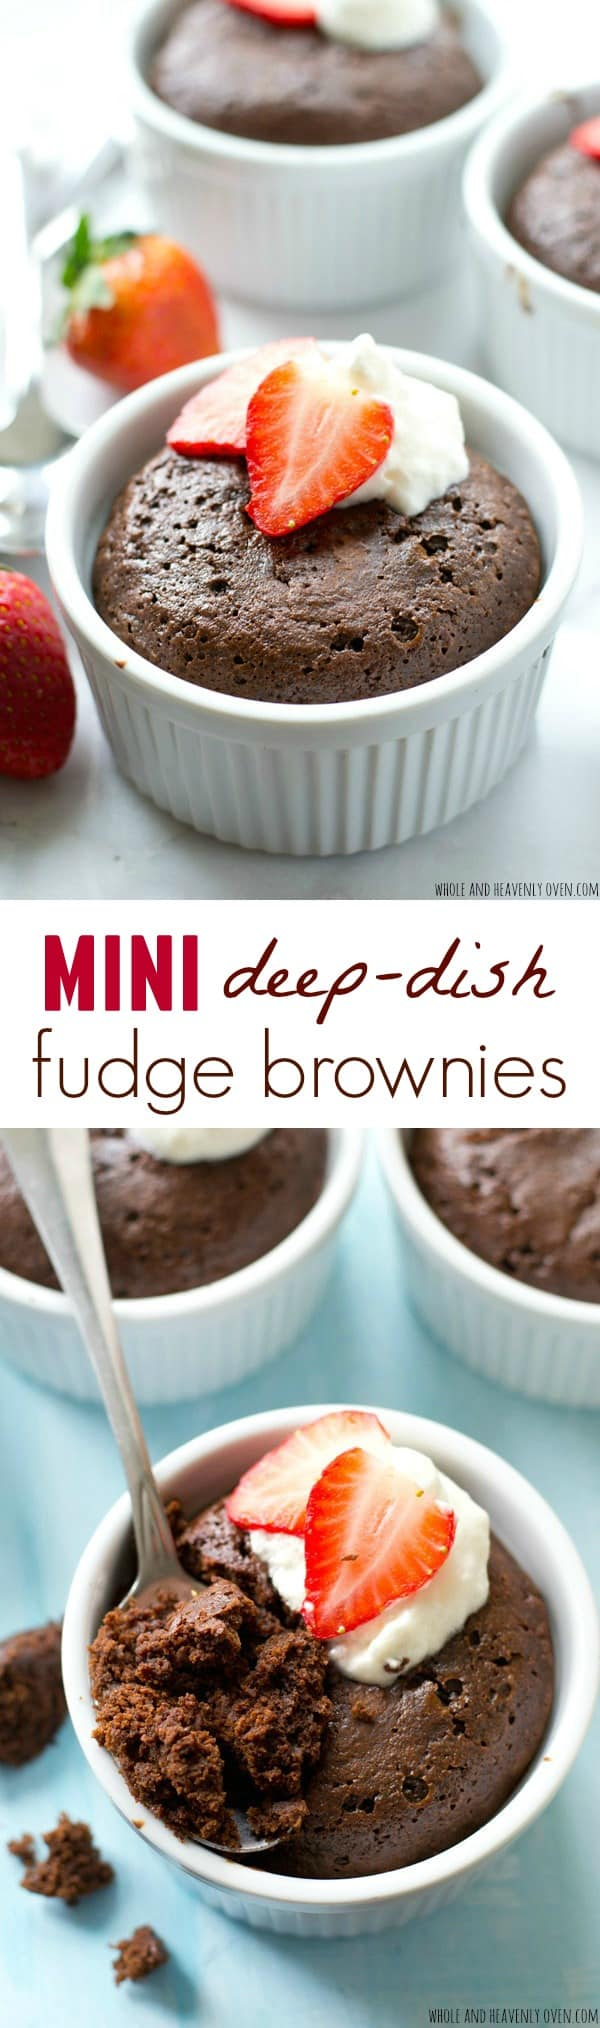 Ultra-fudgy and unbelievably chocolate-y inside, these rich, deep-dish brownies are the perfect dessert for your sweetheart, but they're seriously so good you may not want to share! @WholeHeavenly